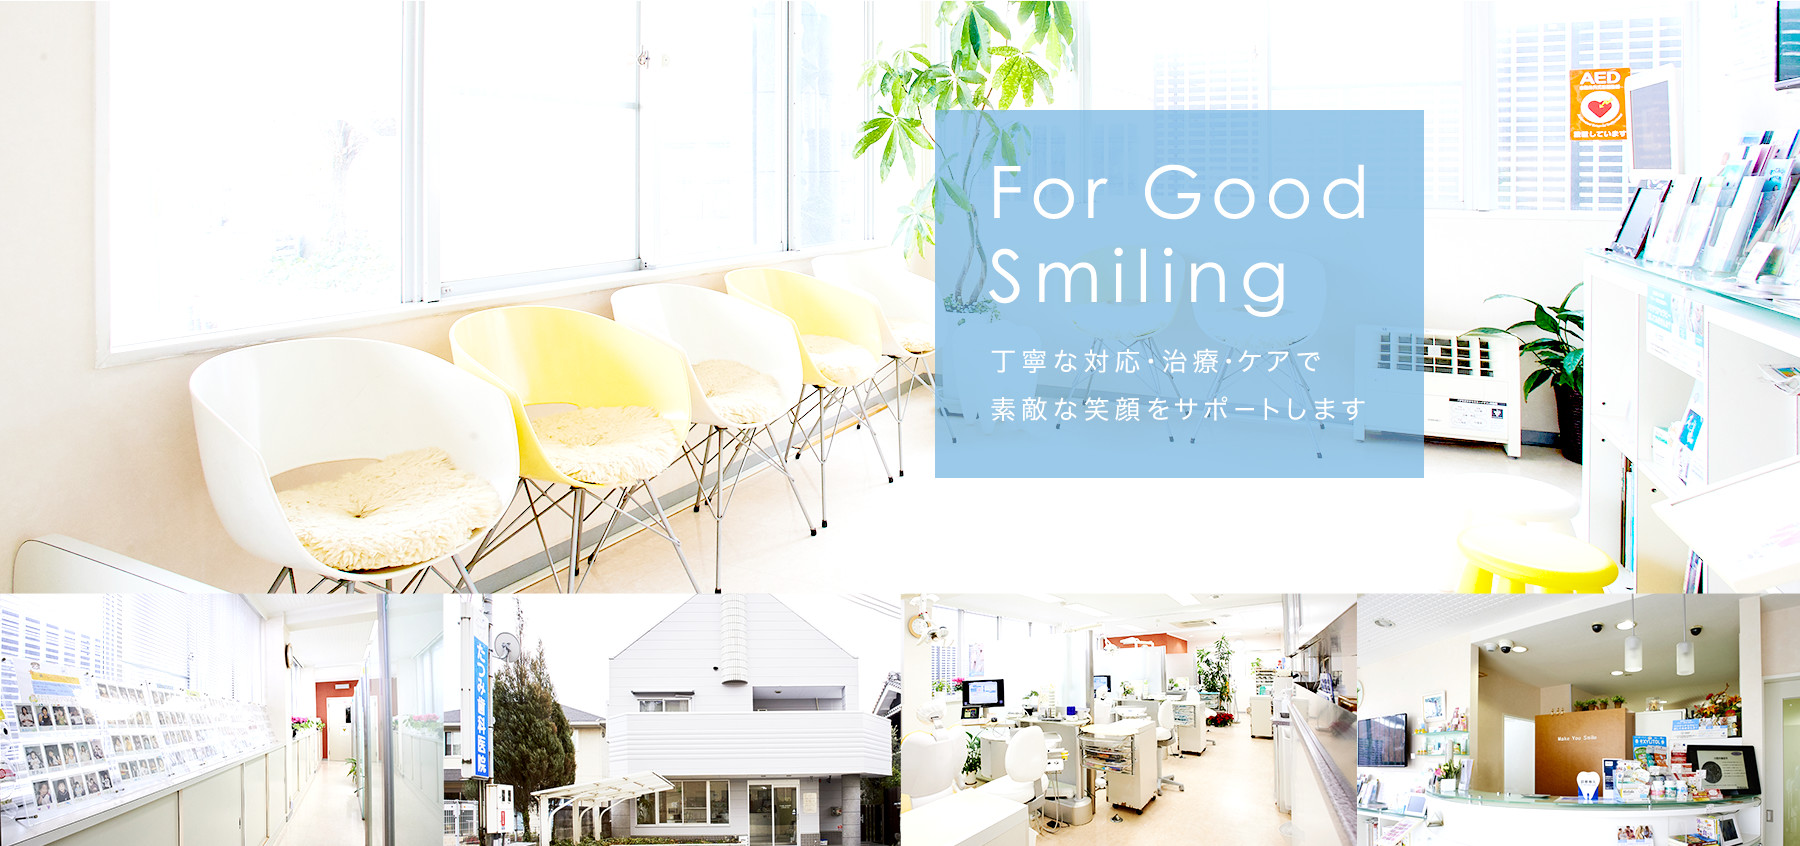 For Good Smiling 丁寧な対応・治療・ケアで素敵な笑顔をサポートします